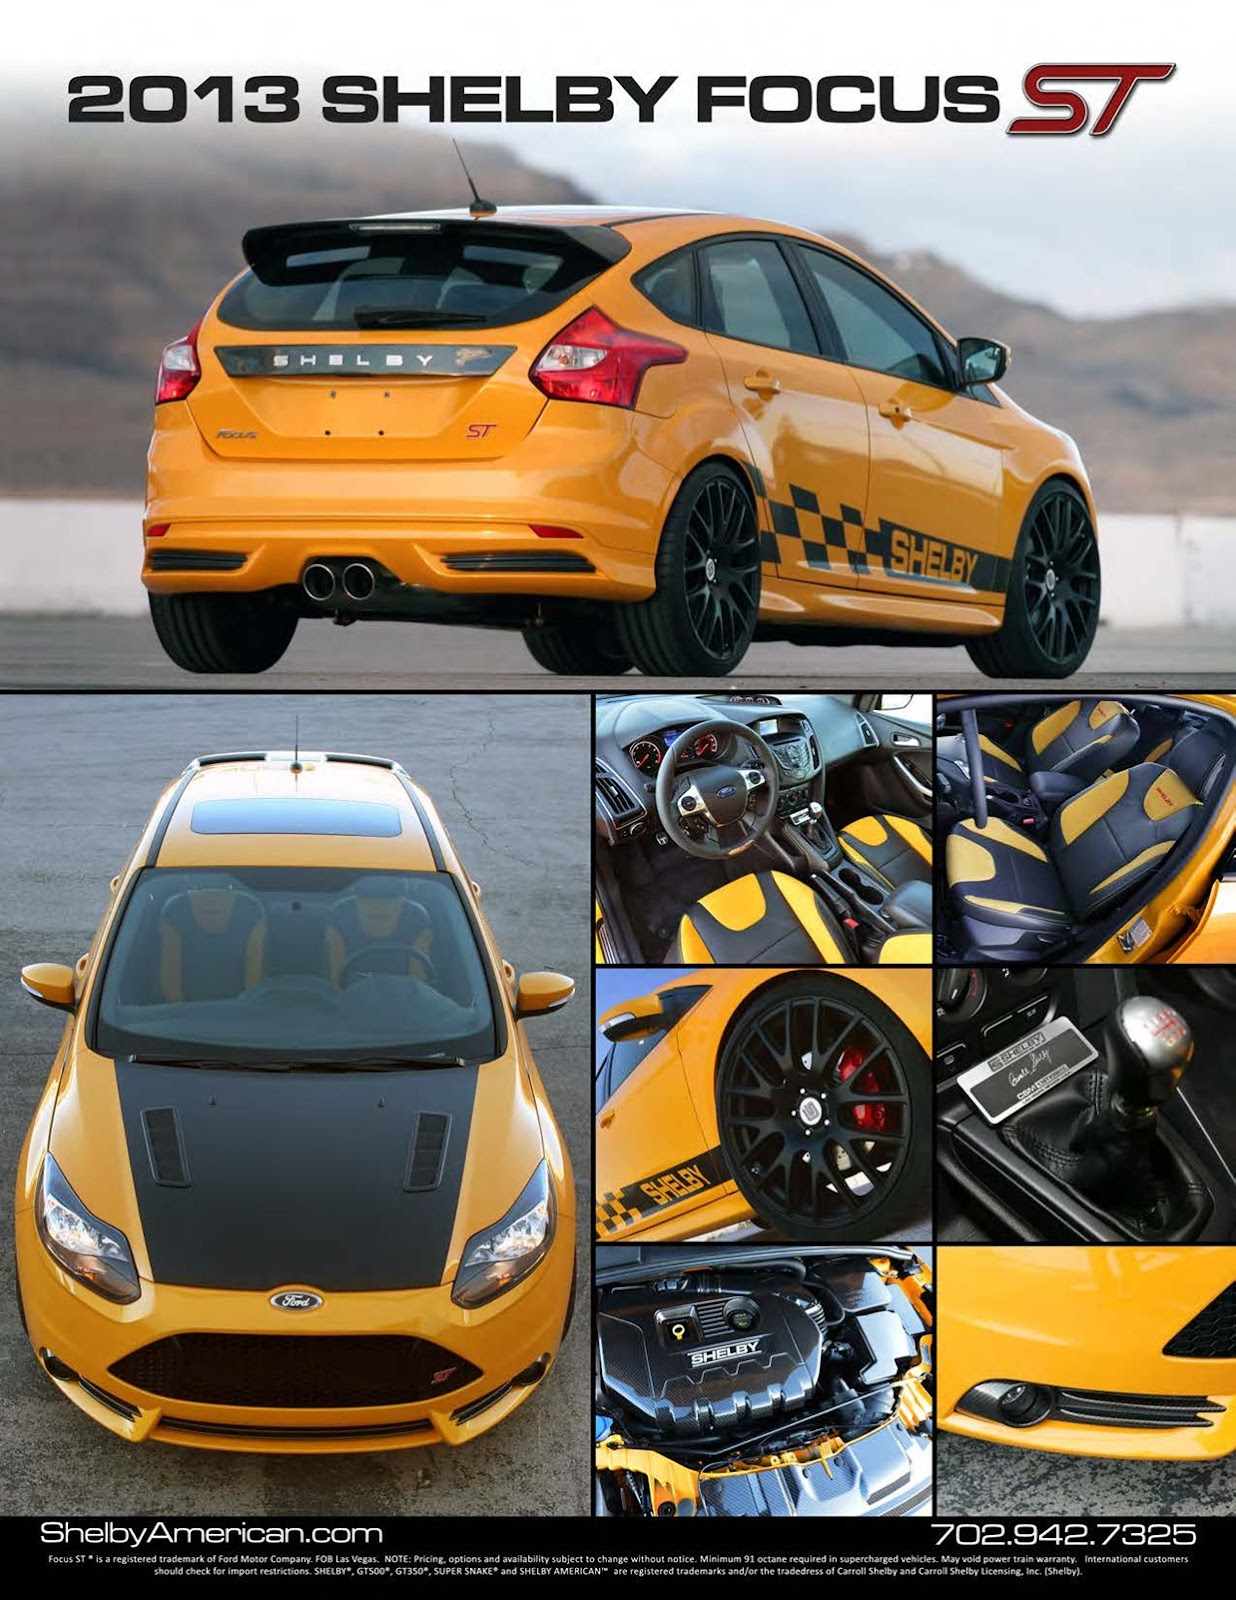 Ford Focus Rs Wide Body Kit : focus, Shelby, Unveils, Tuned, Focus, Widebody, GT500, Super, Snake, NASIOC